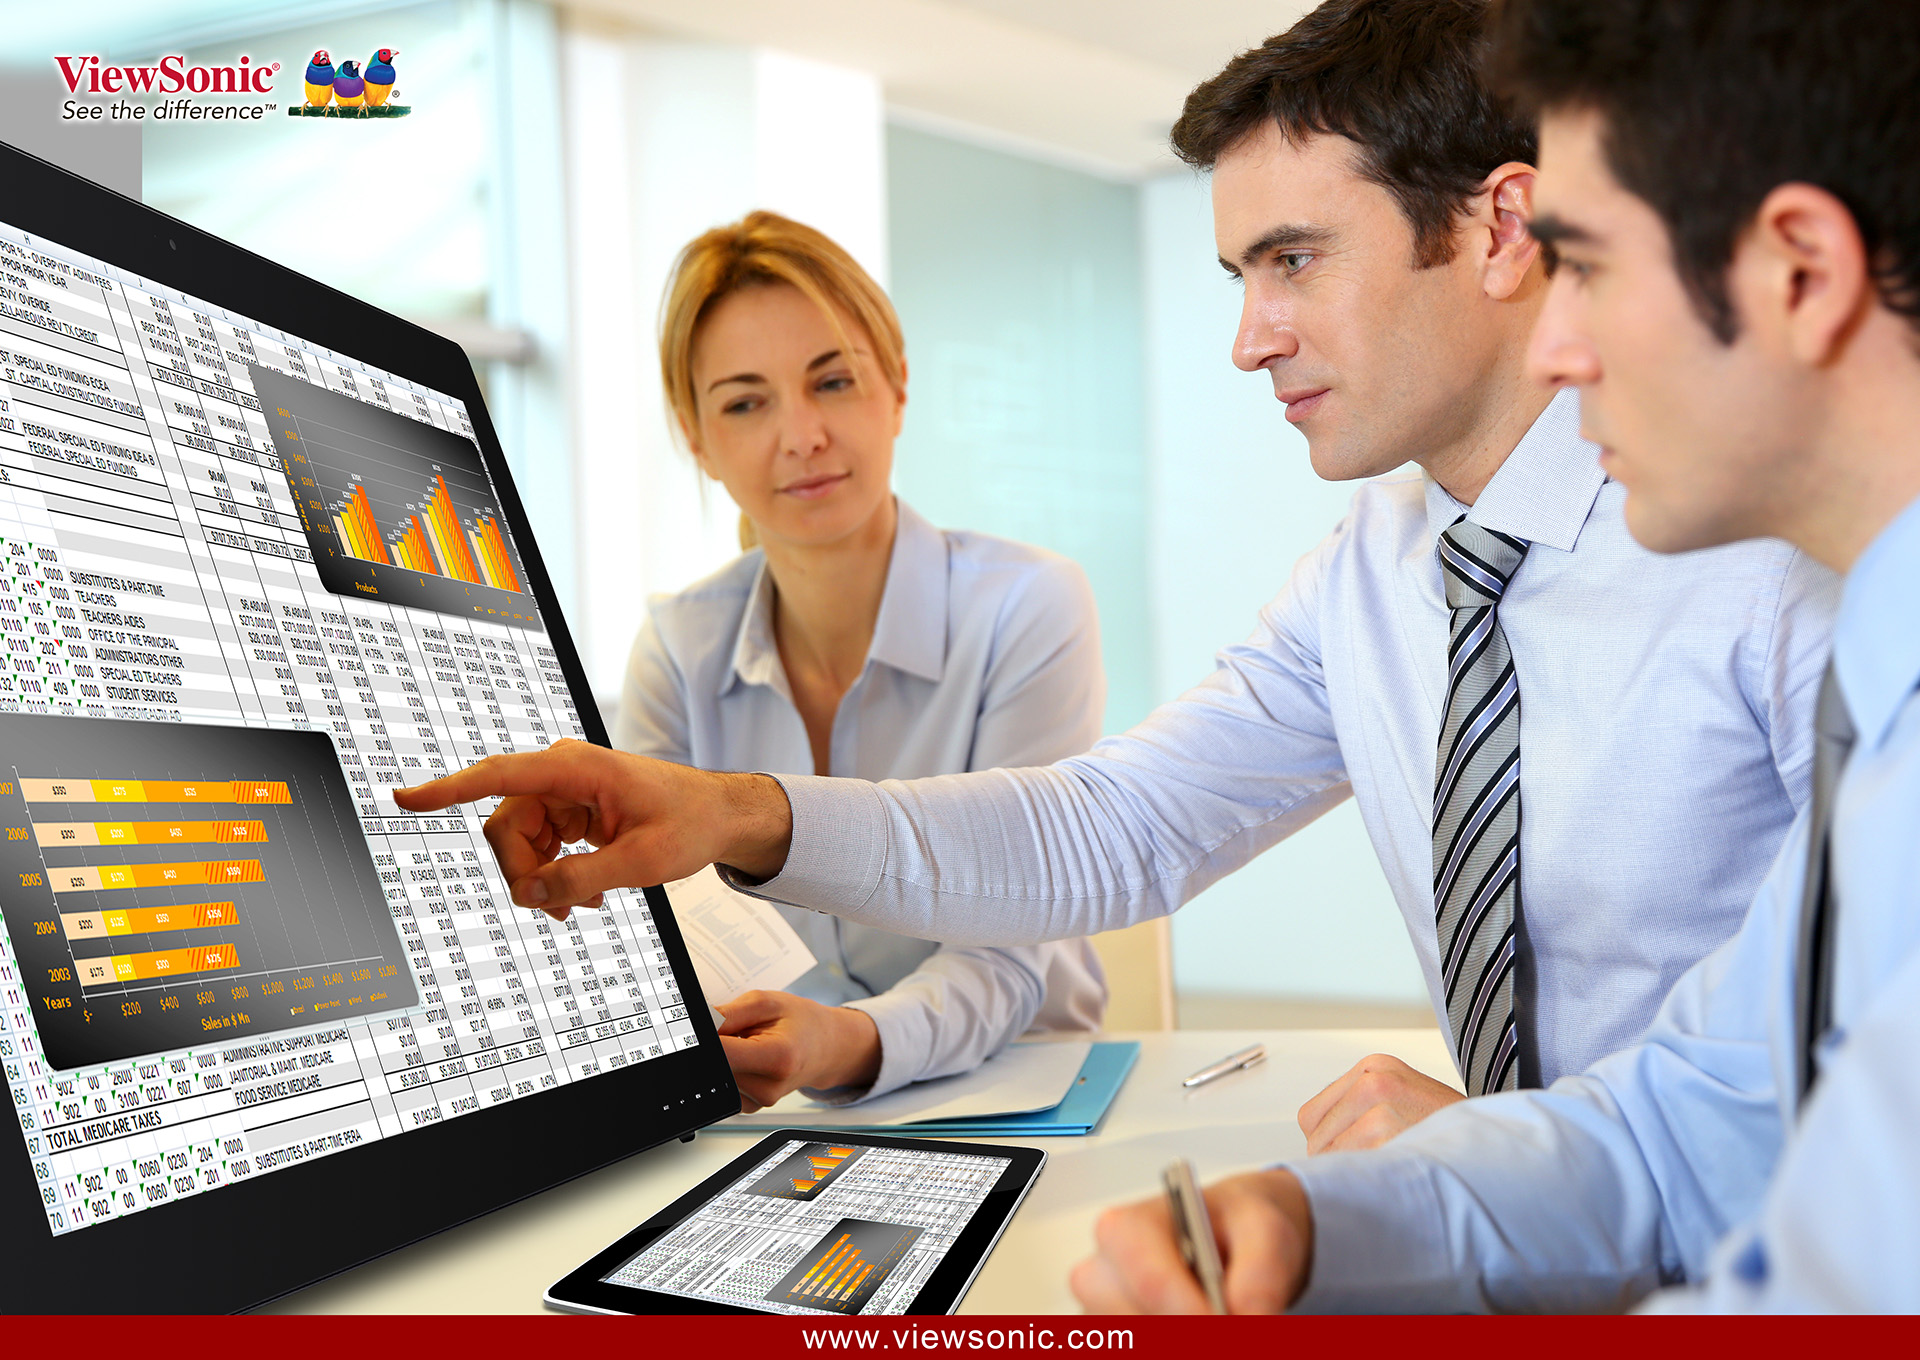 New Touch Screen Display series from View Sonic with innovative multi-touch  technology